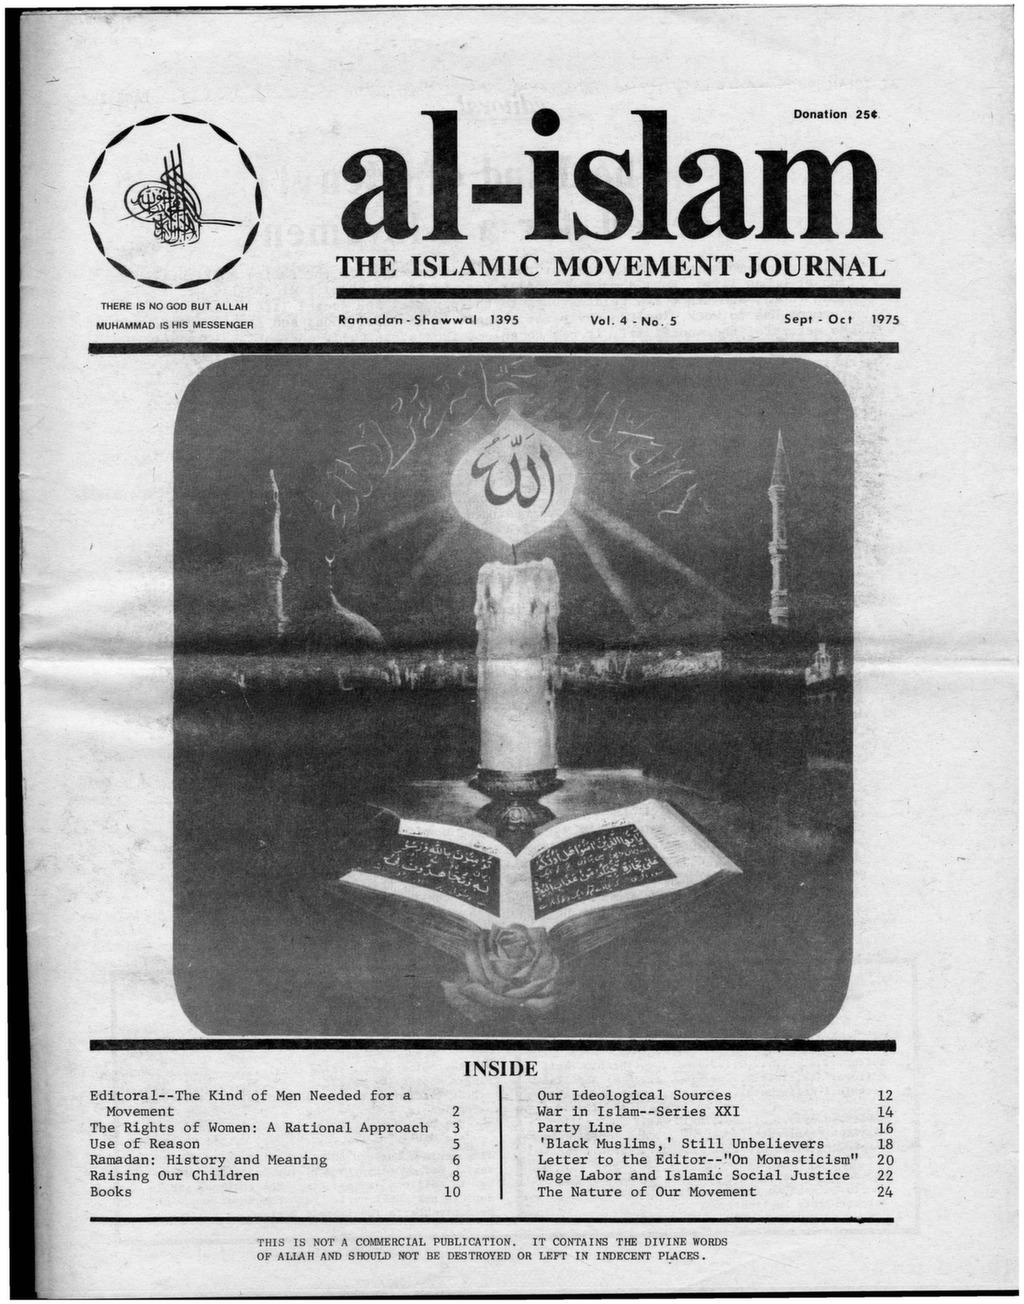 Al-Islam, 1975, Vol  4, No  5 (Sept-Oct) - After Malcolm